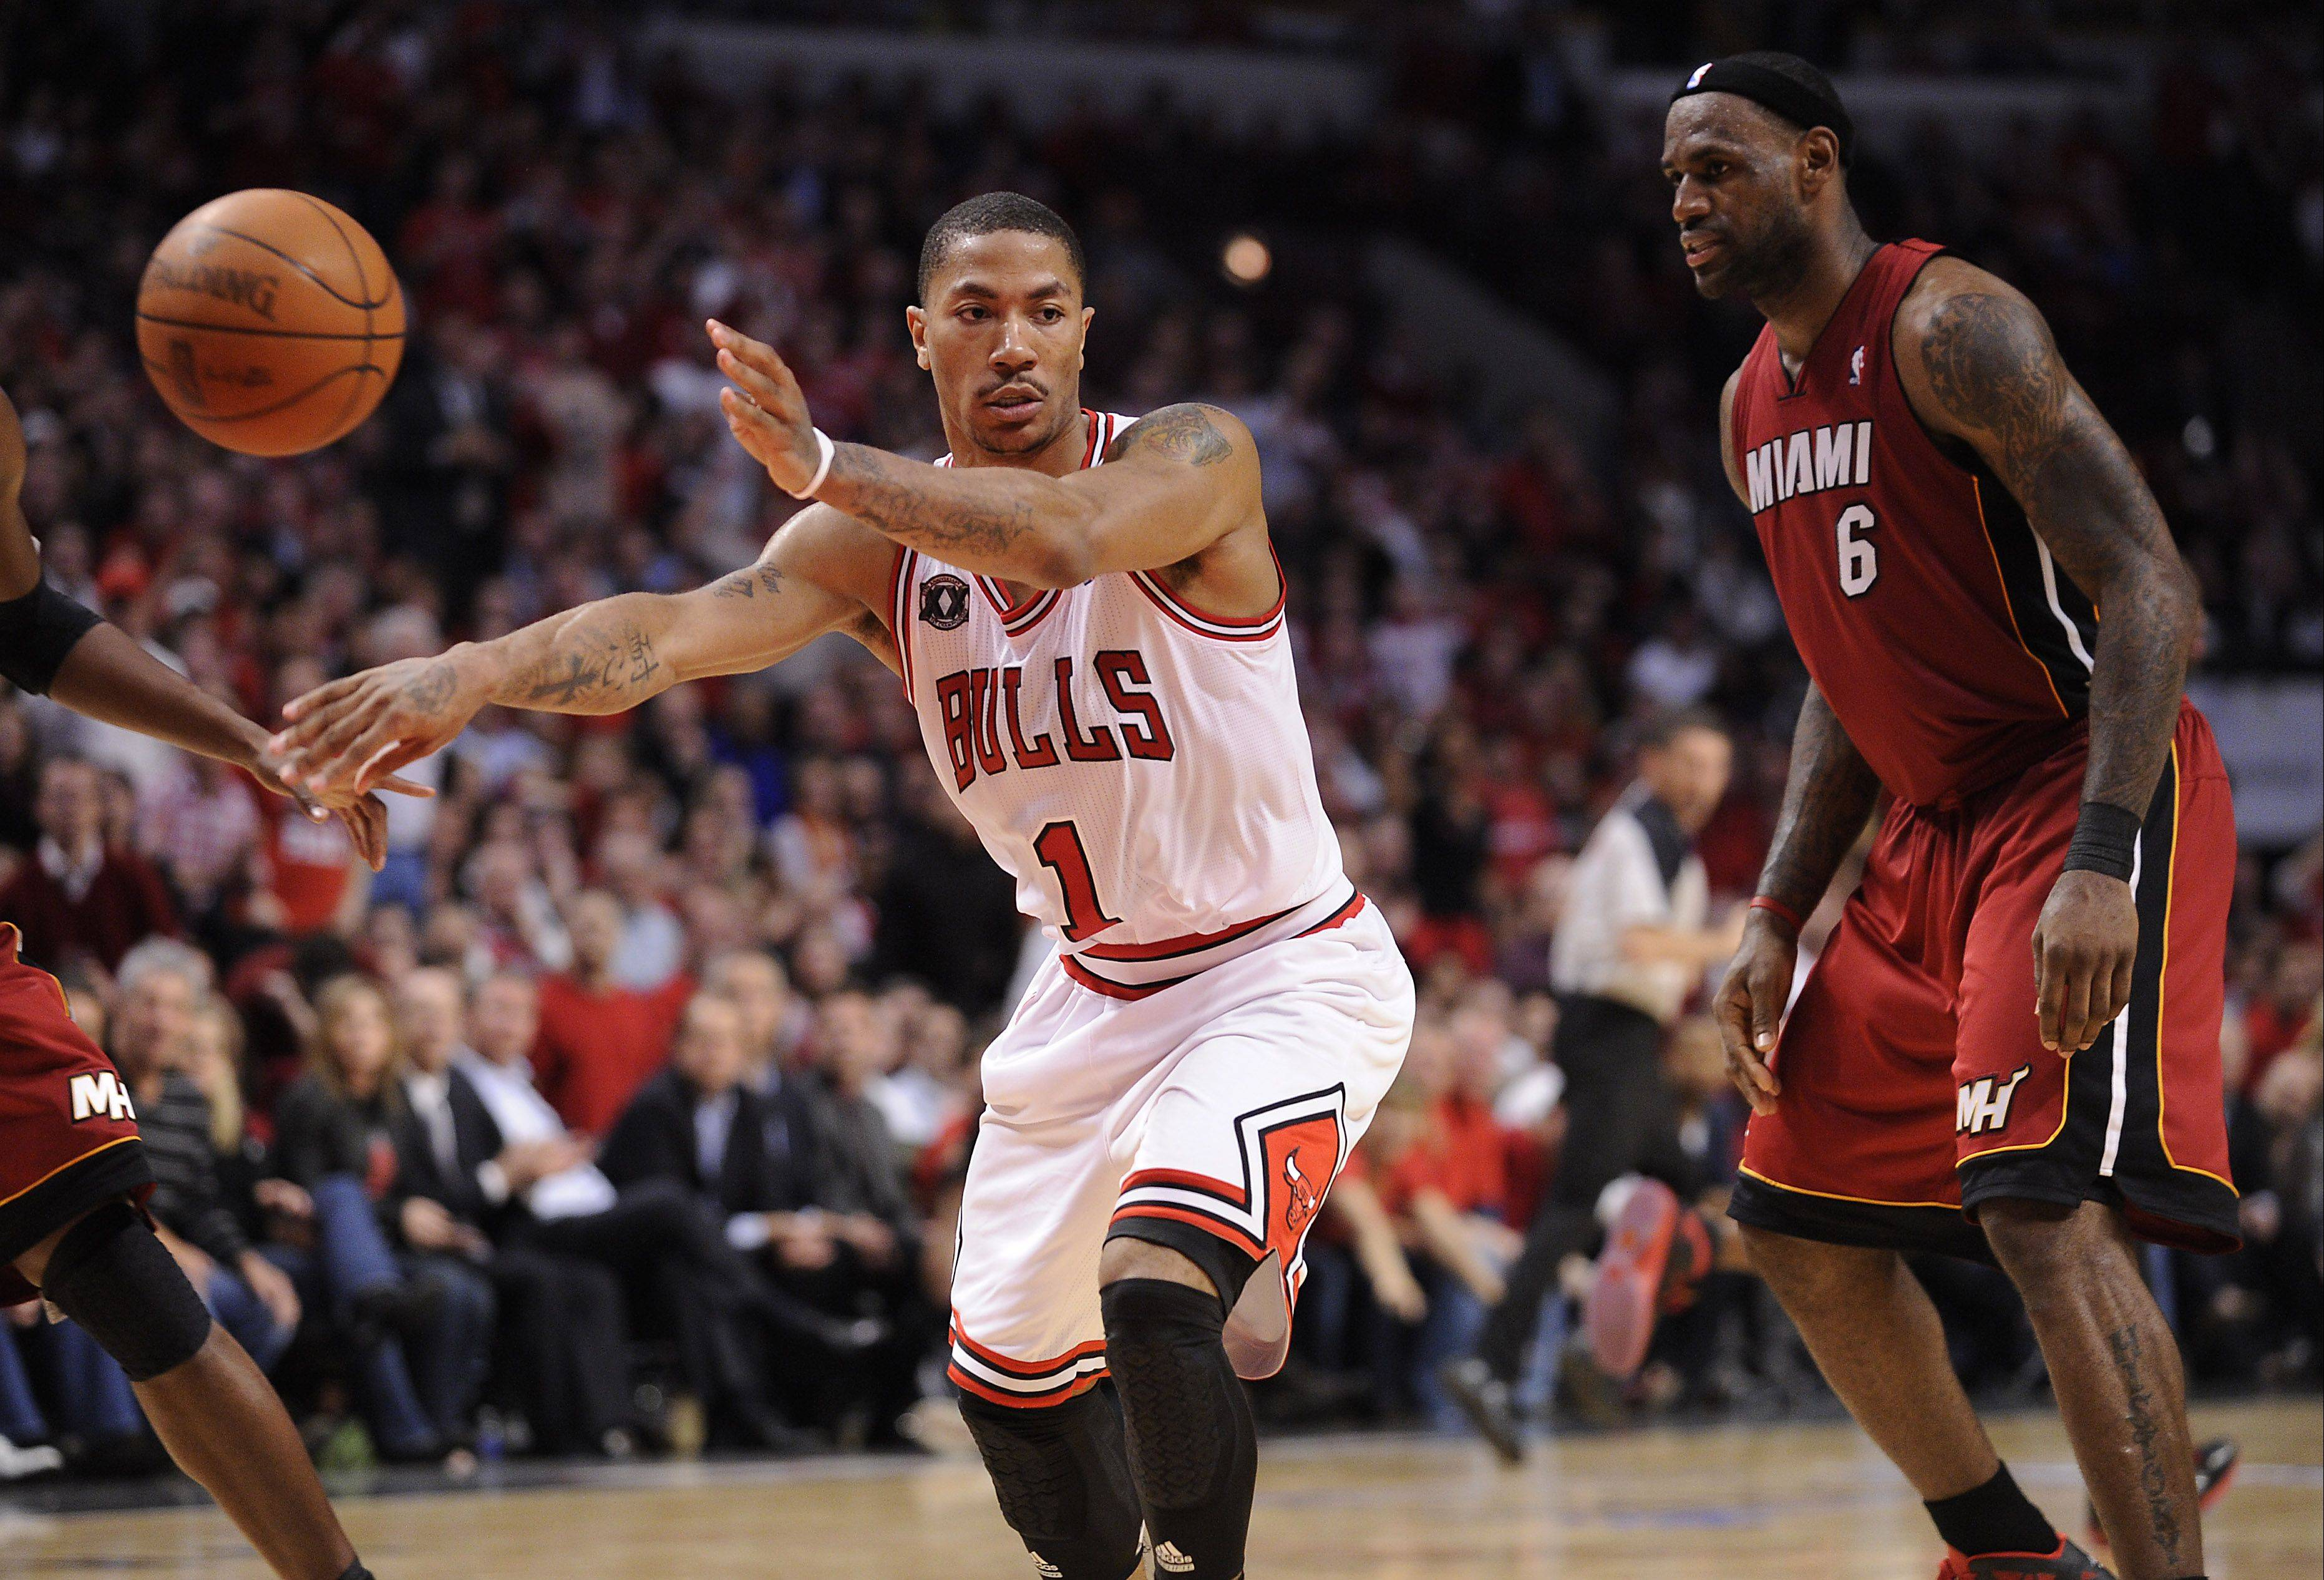 The Bulls' Derrick Rose learned some valuable lessons in the Eastern Conference playoff series against the Heat, a postseason education that should only increase his skills and abilities next season.